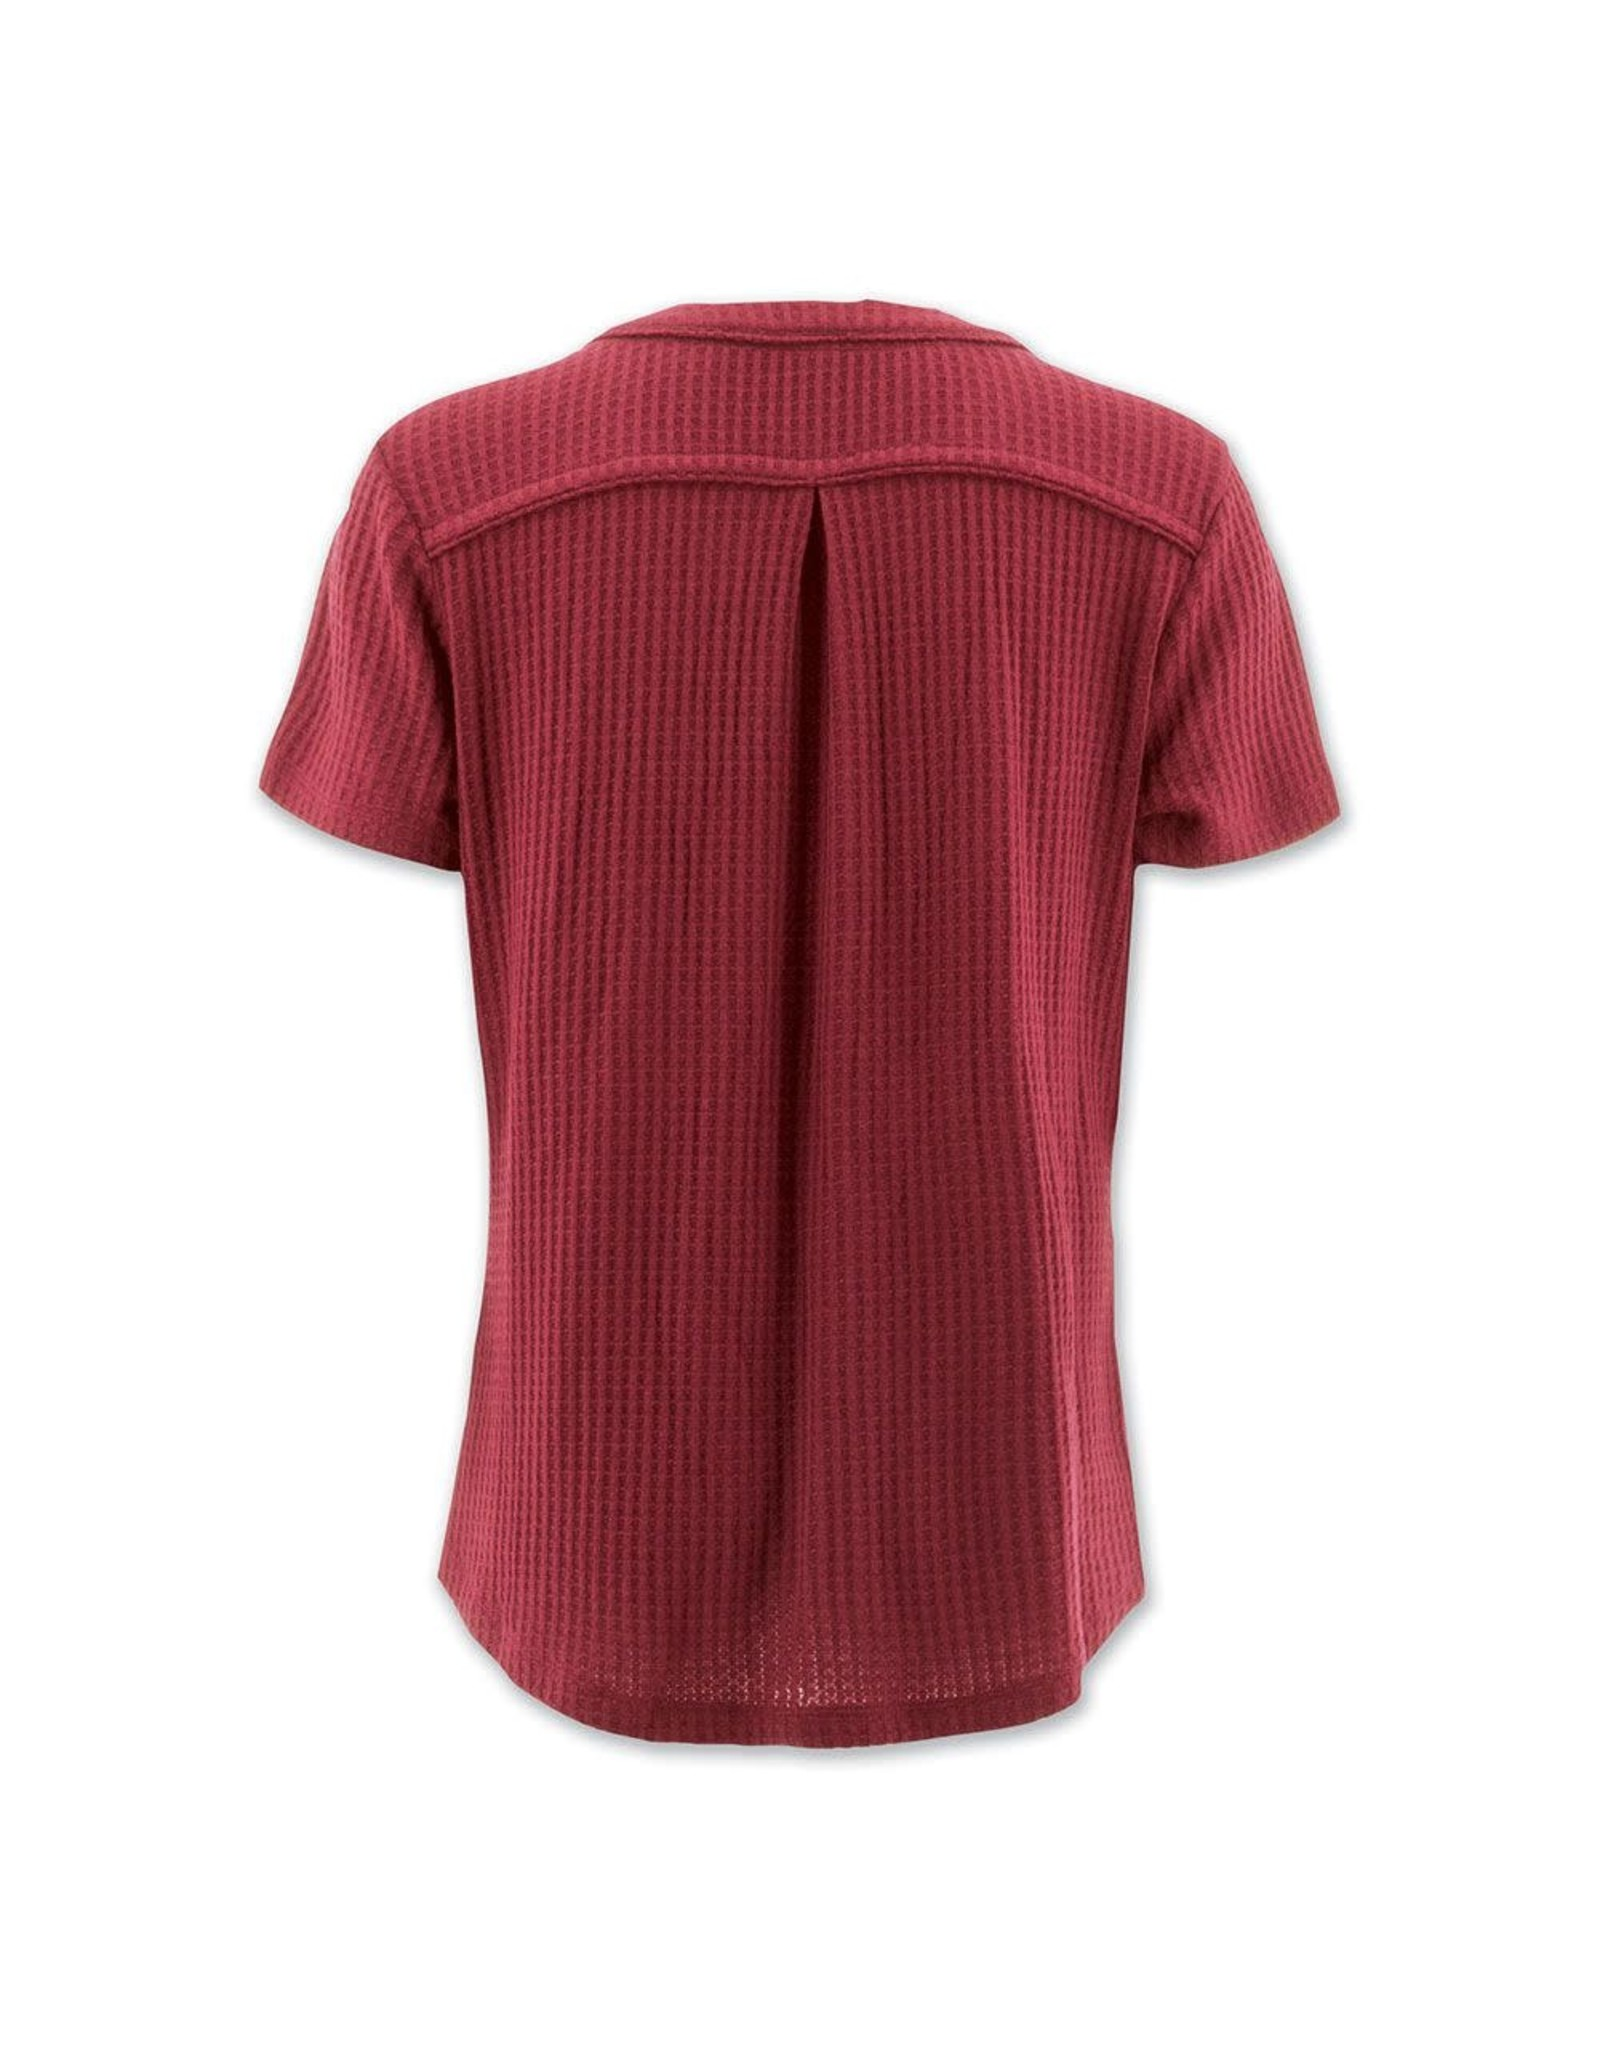 Aventura Red Button & Tie Front Waffle Knit Top